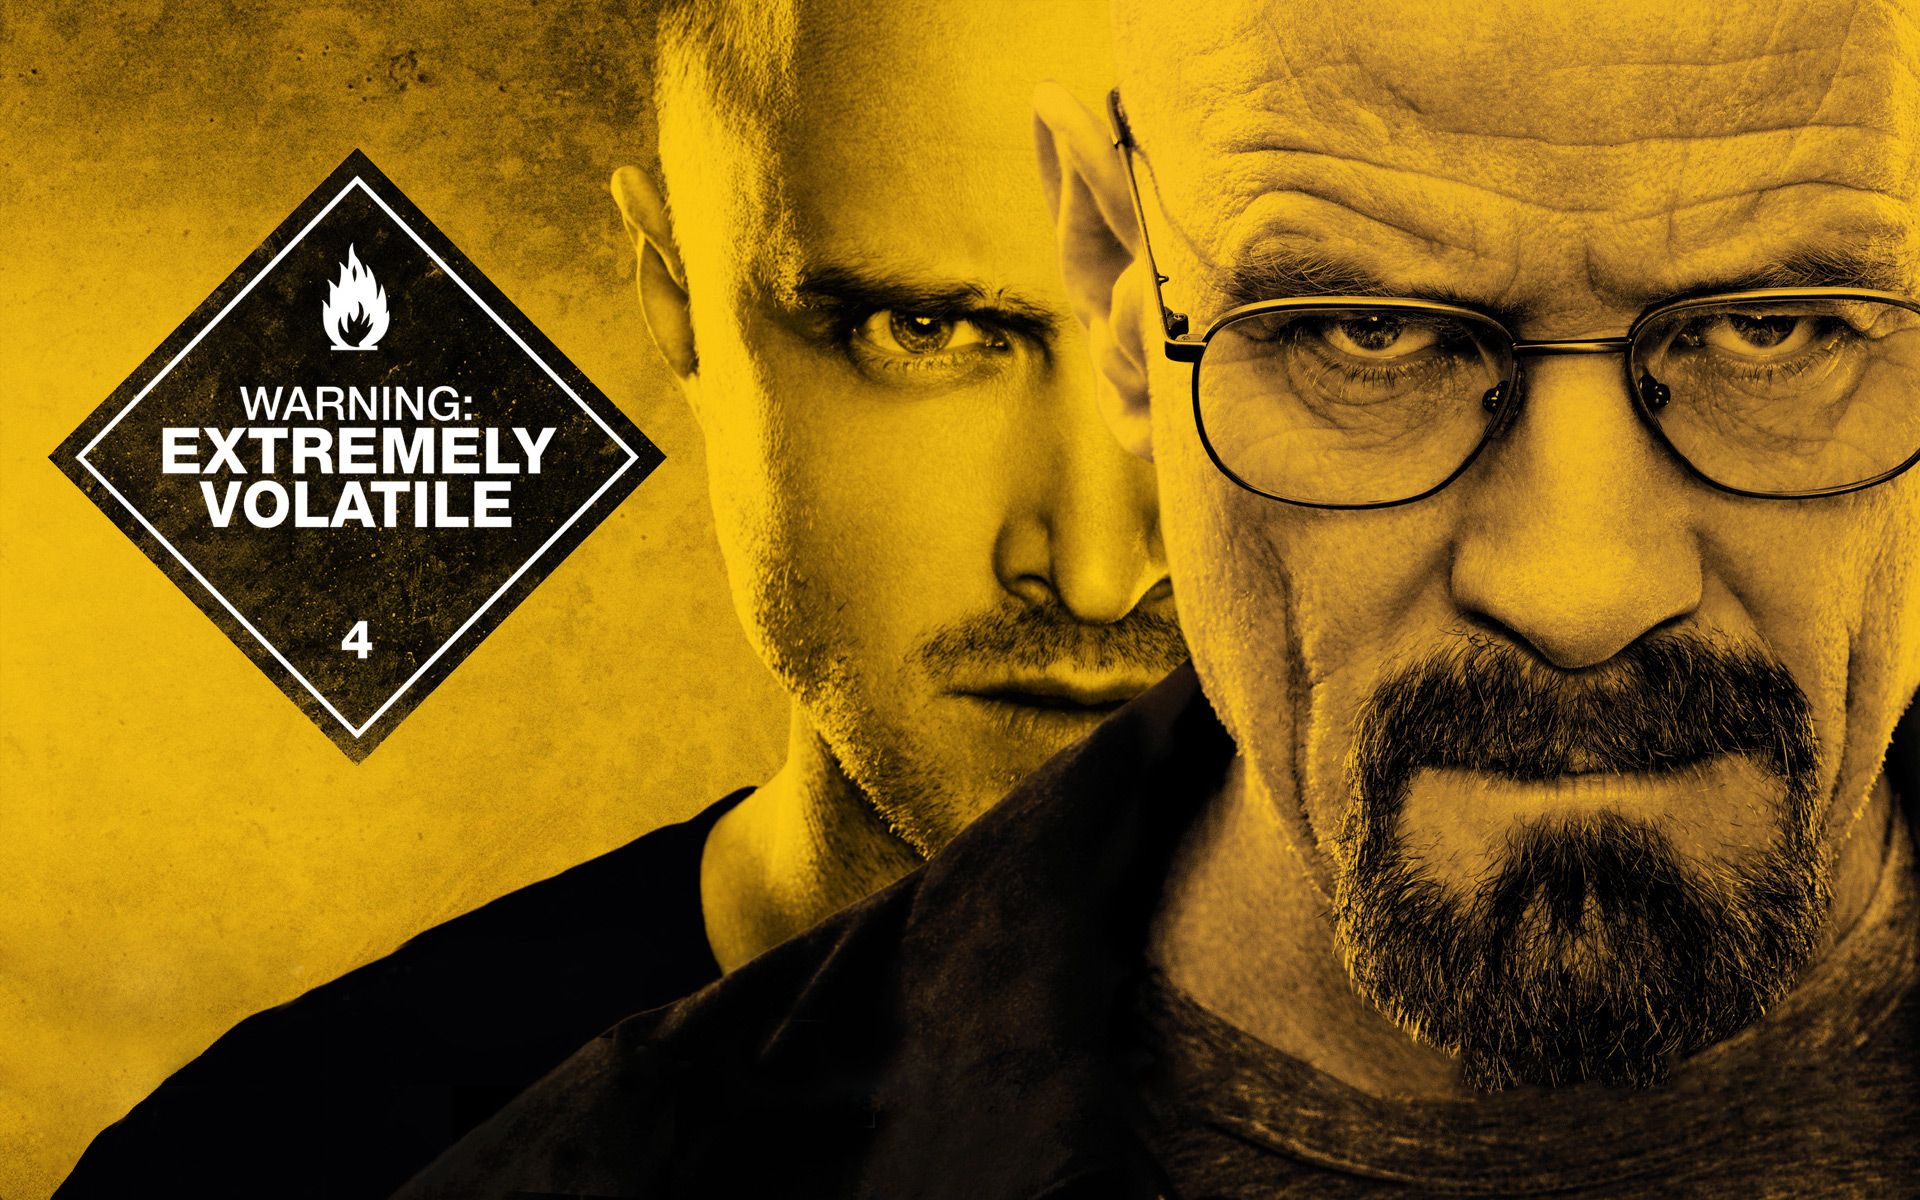 Breaking Bad Res: 1920x1200 / Size:933kb. Views: 171218